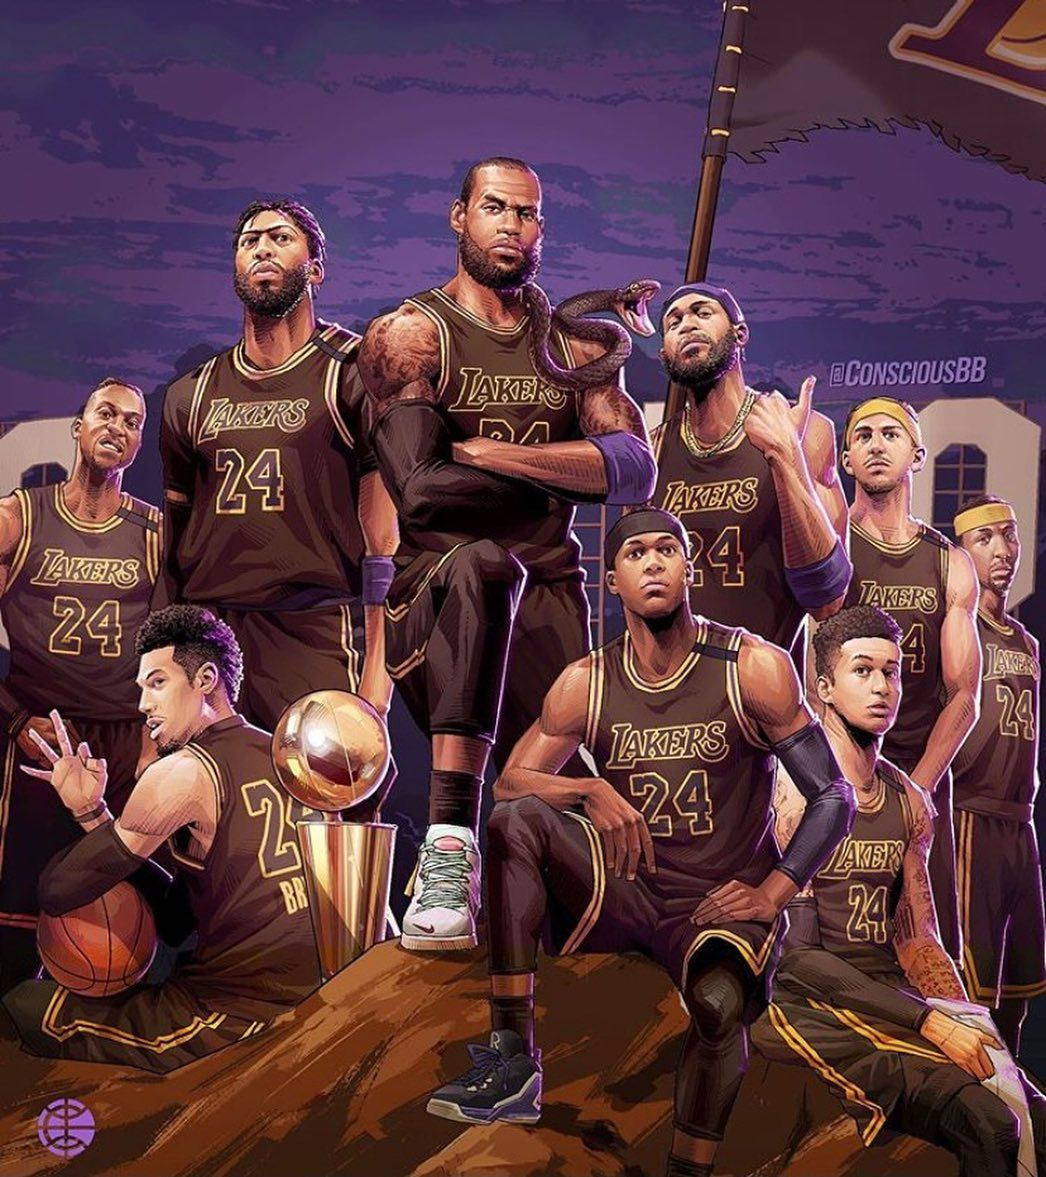 Lakersbackintime17x Lakersbackintime Posted On Instagram Oct 13 2020 At 8 43pm Utc Nba Artwork Lakers Wallpaper Nba Pictures Kobe and lebron lakers wallpaper iphone